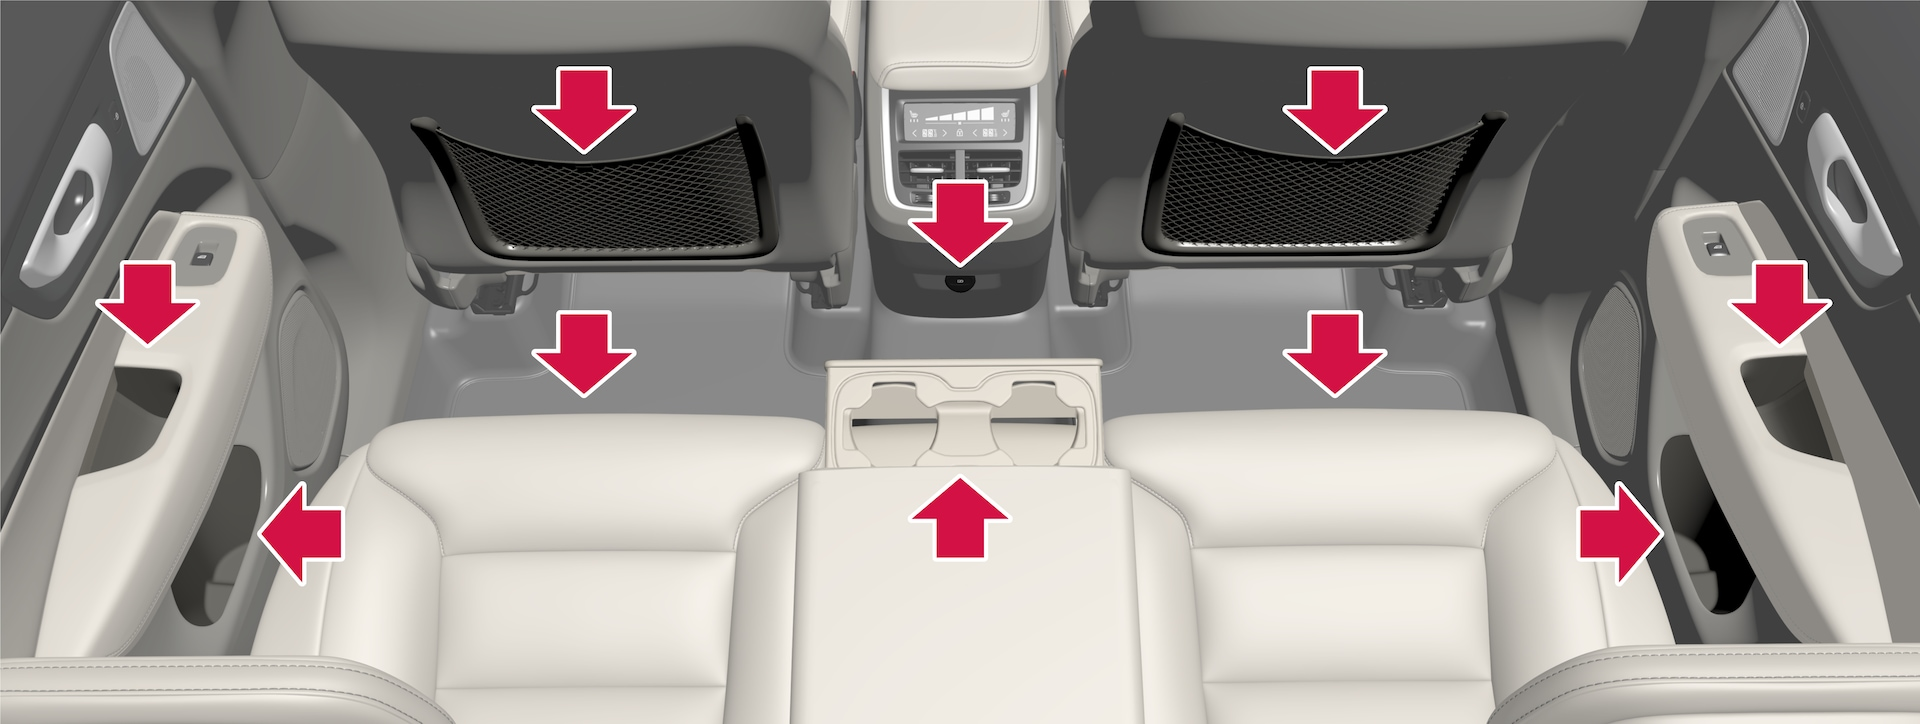 P5-21w22-XC60-Overview interior rear seat